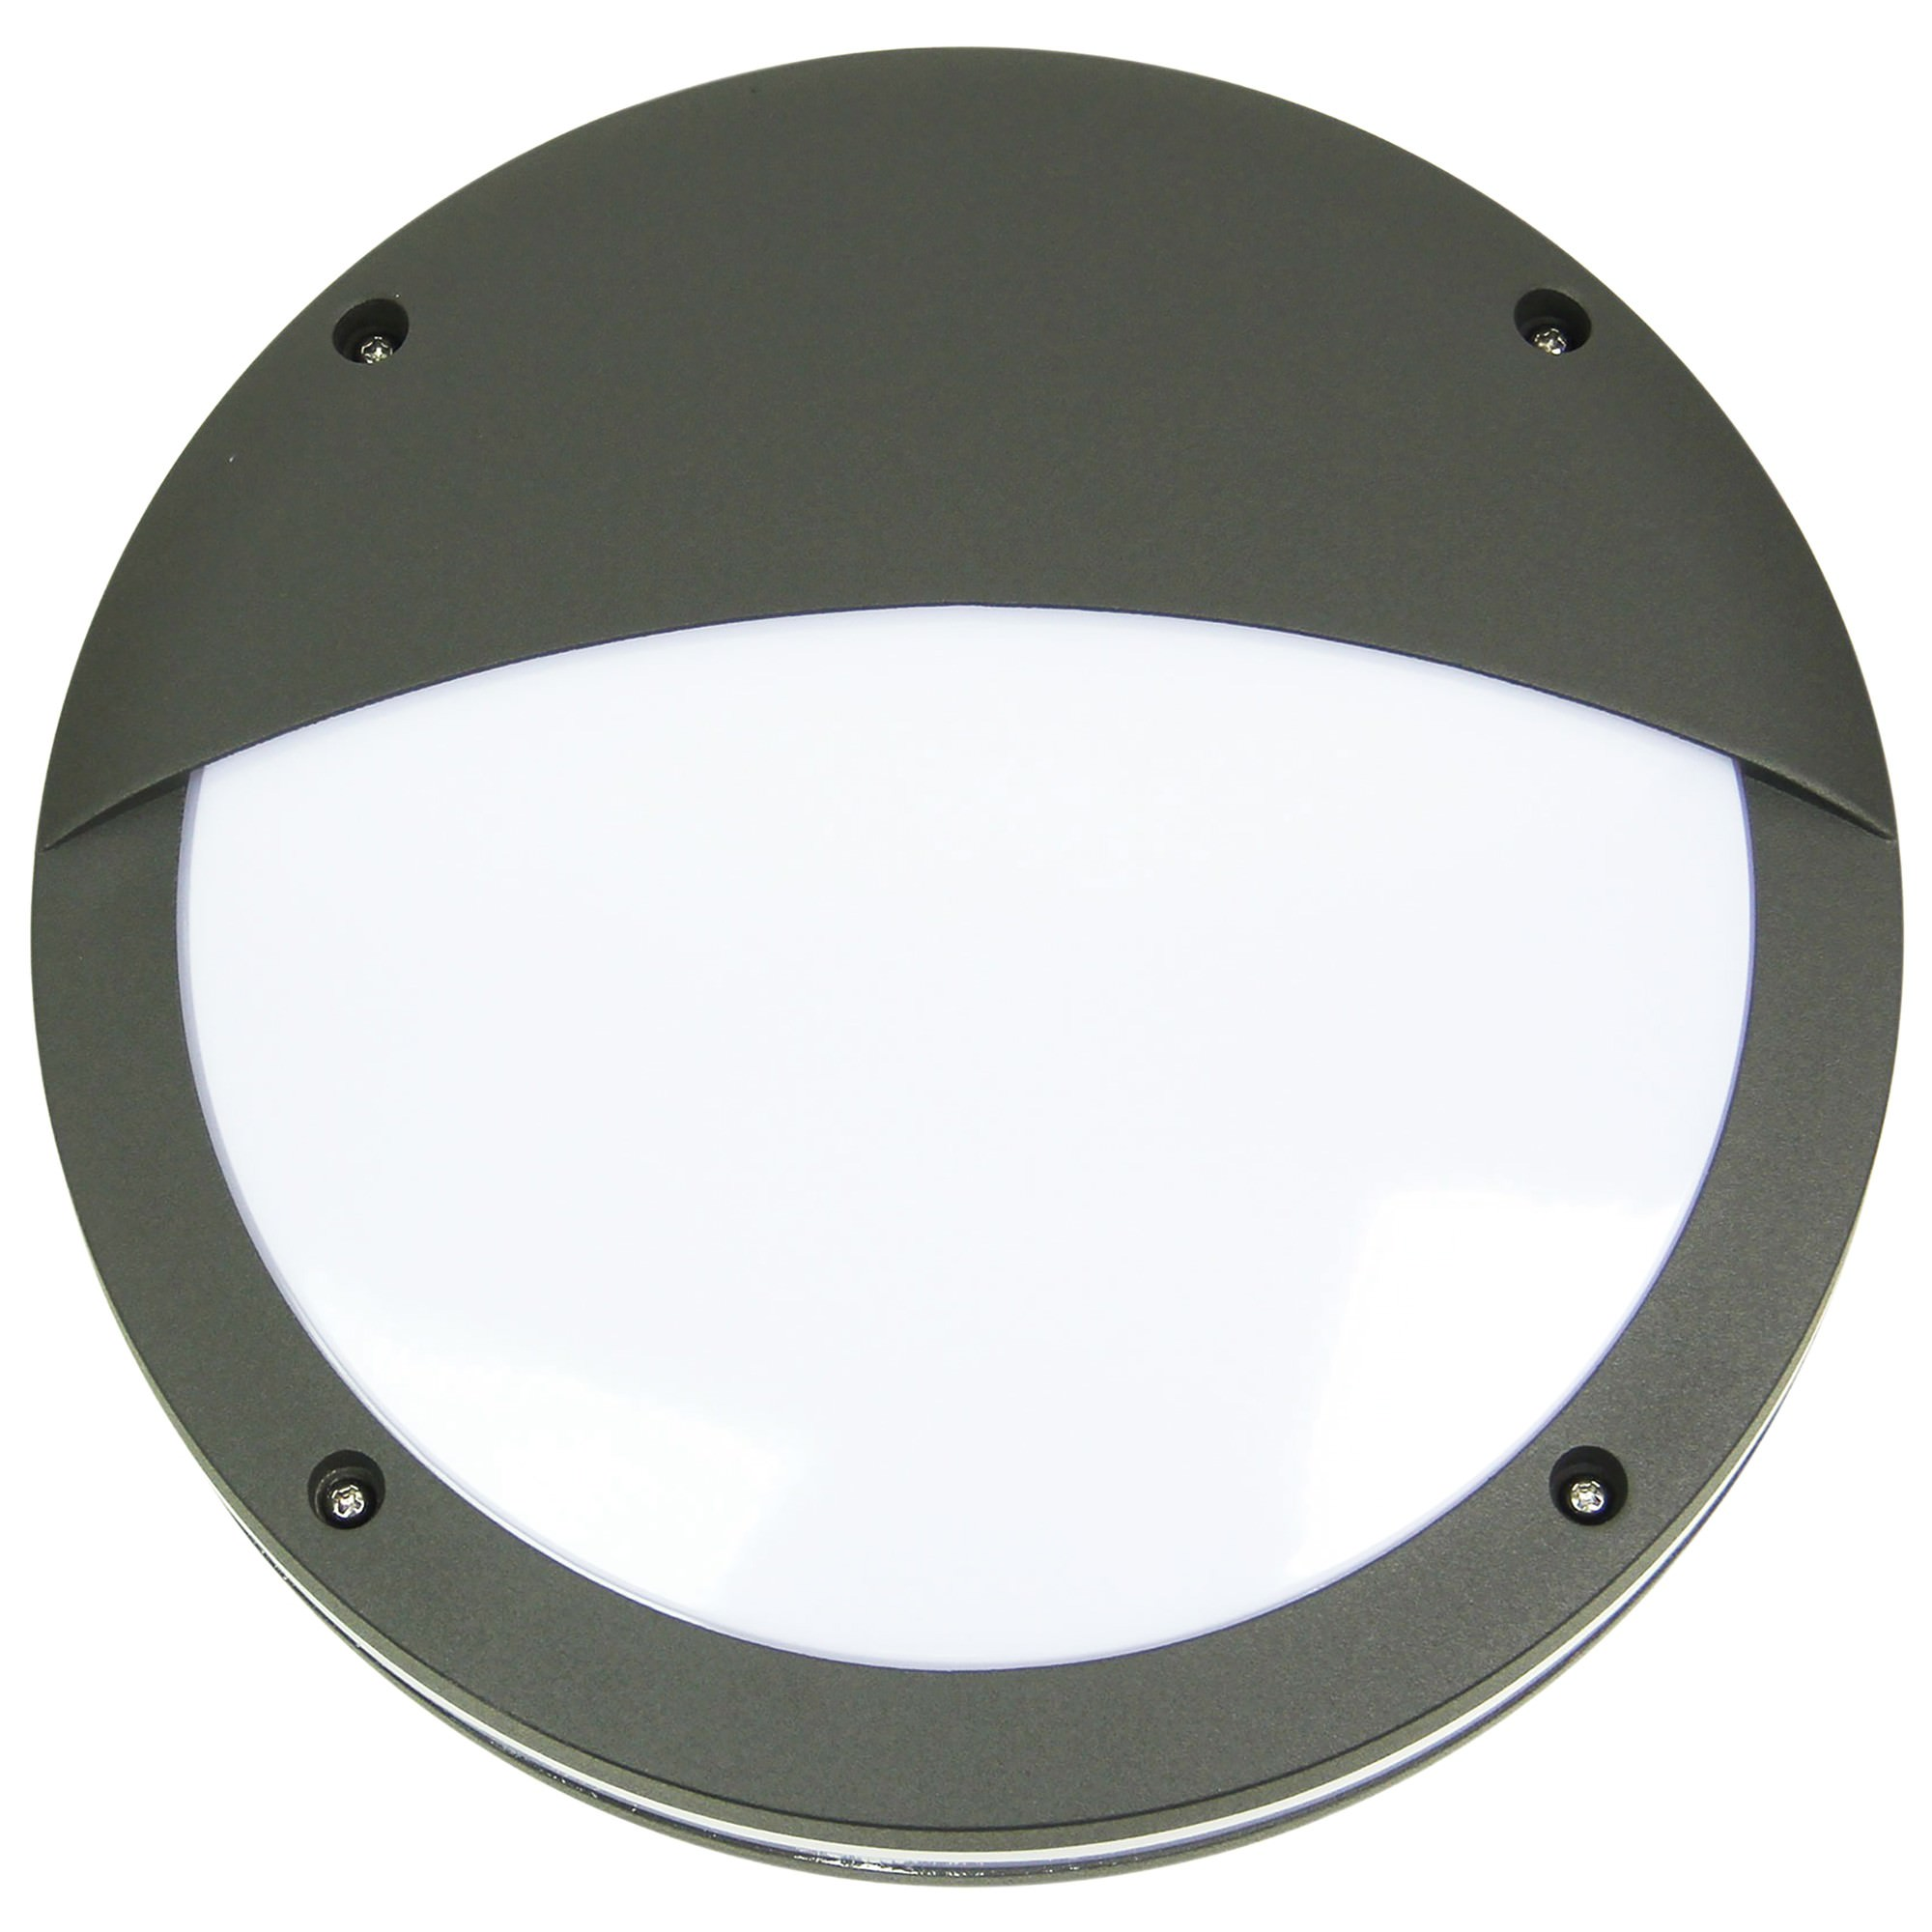 Tonato IP54 Exterior Bunker Light, Eyelid, Graphite